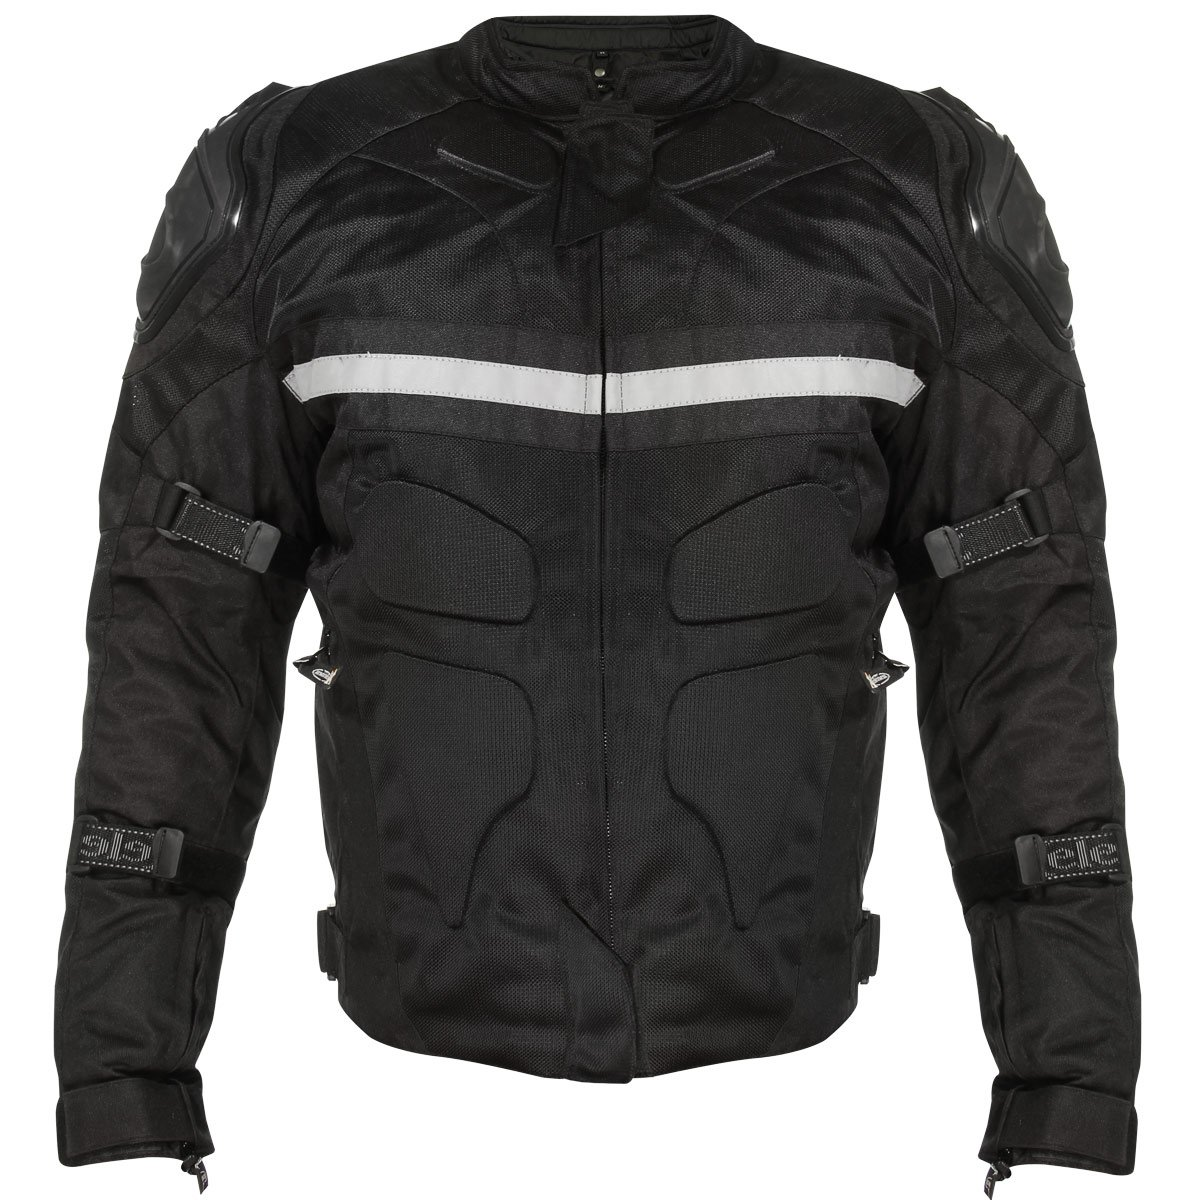 Xelement CF751 Mens Black Tri-Tex Motorcycle Jacket with Level-3 Armor - Medium by Xelement